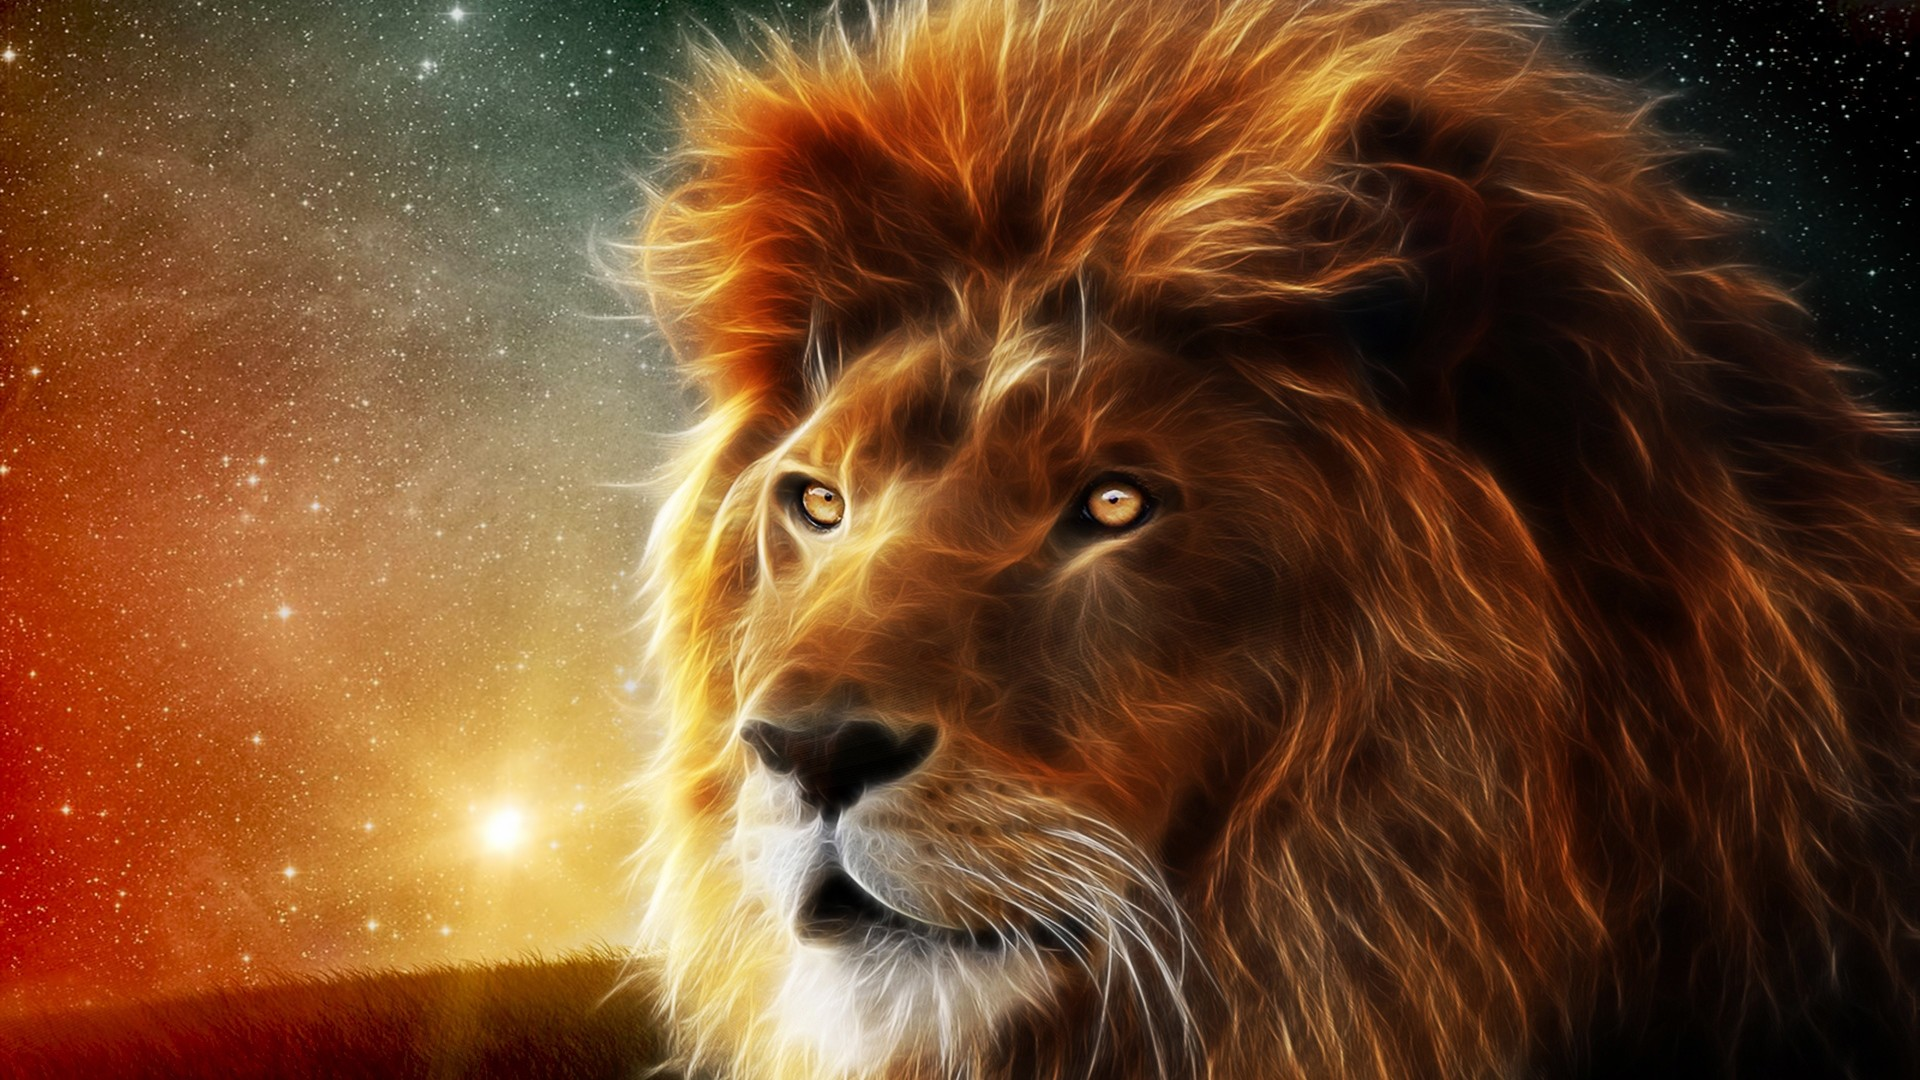 Res: 1920x1080, Get the latest lion, face, mane news, pictures and videos and learn all  about lion, face, mane from wallpapers4u.org, your wallpaper news source.